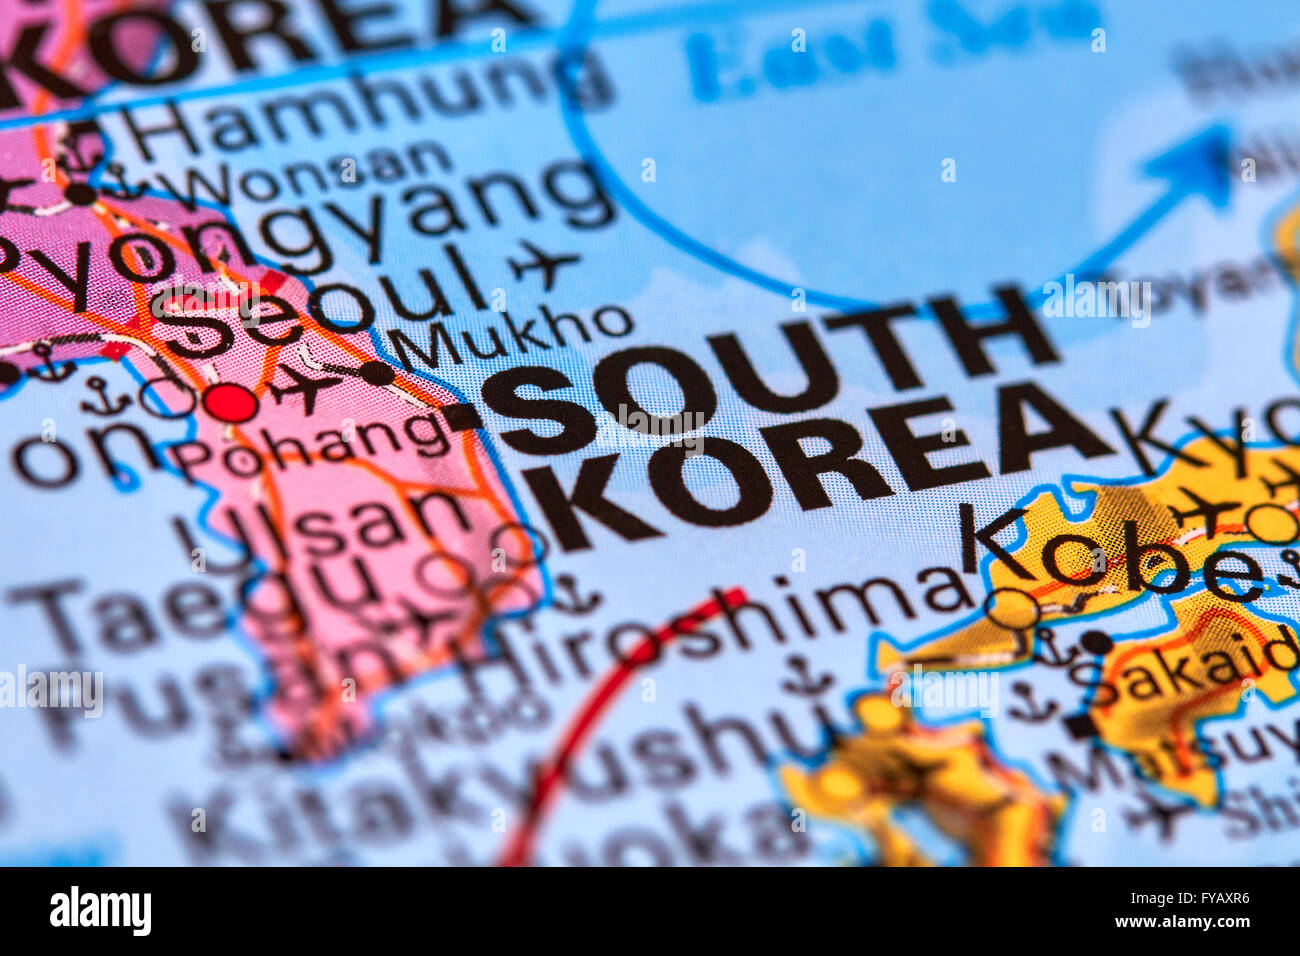 South Korea Country in Asia on the World Map Stock Photo Royalty